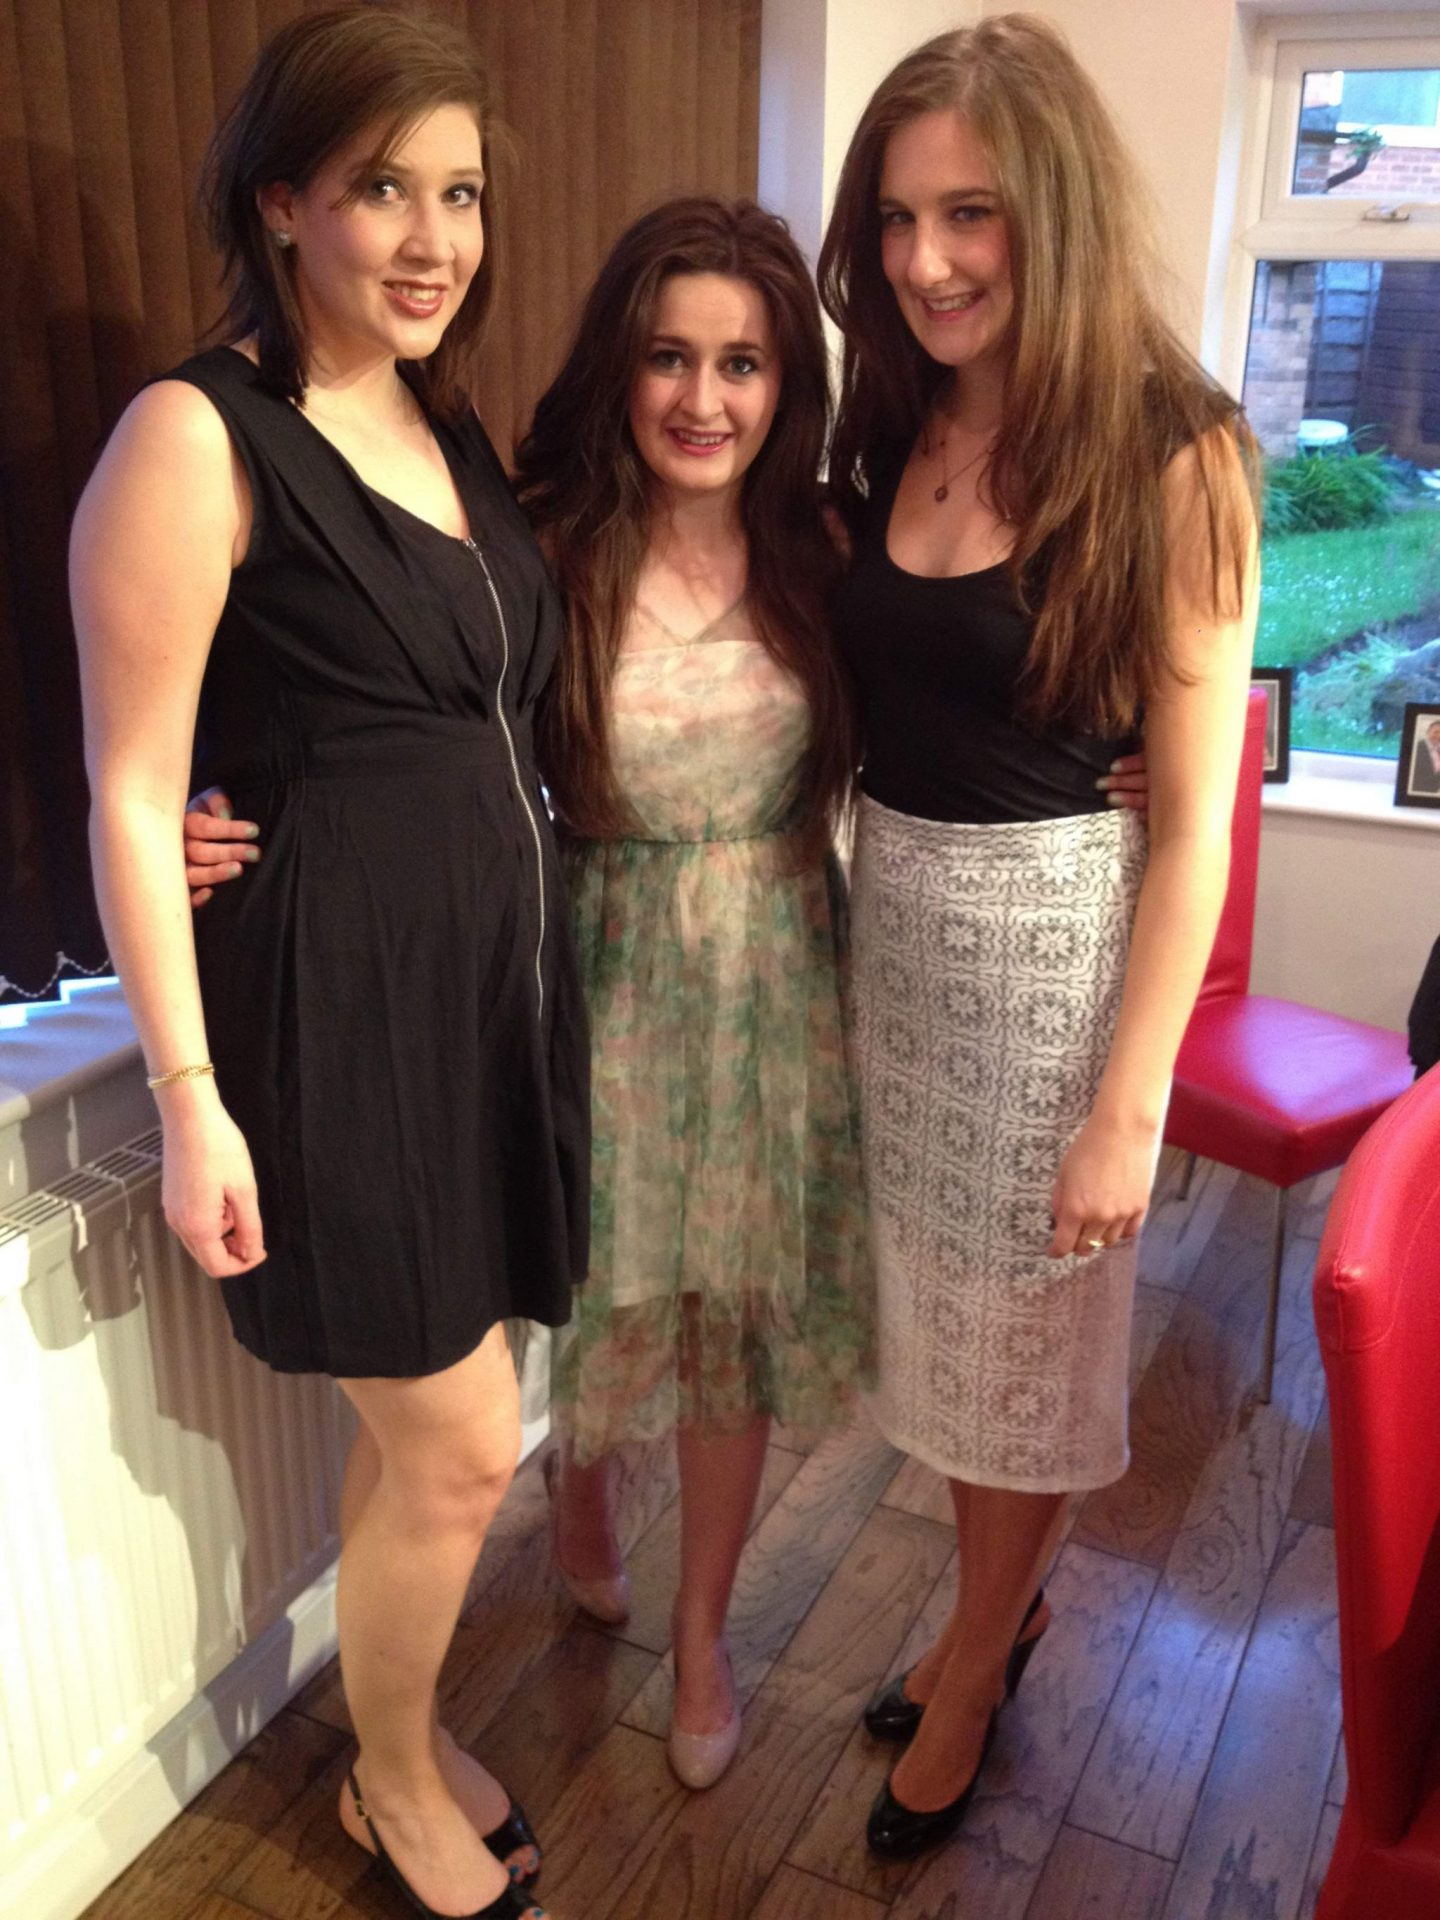 Girls ready for a night out in Manchester